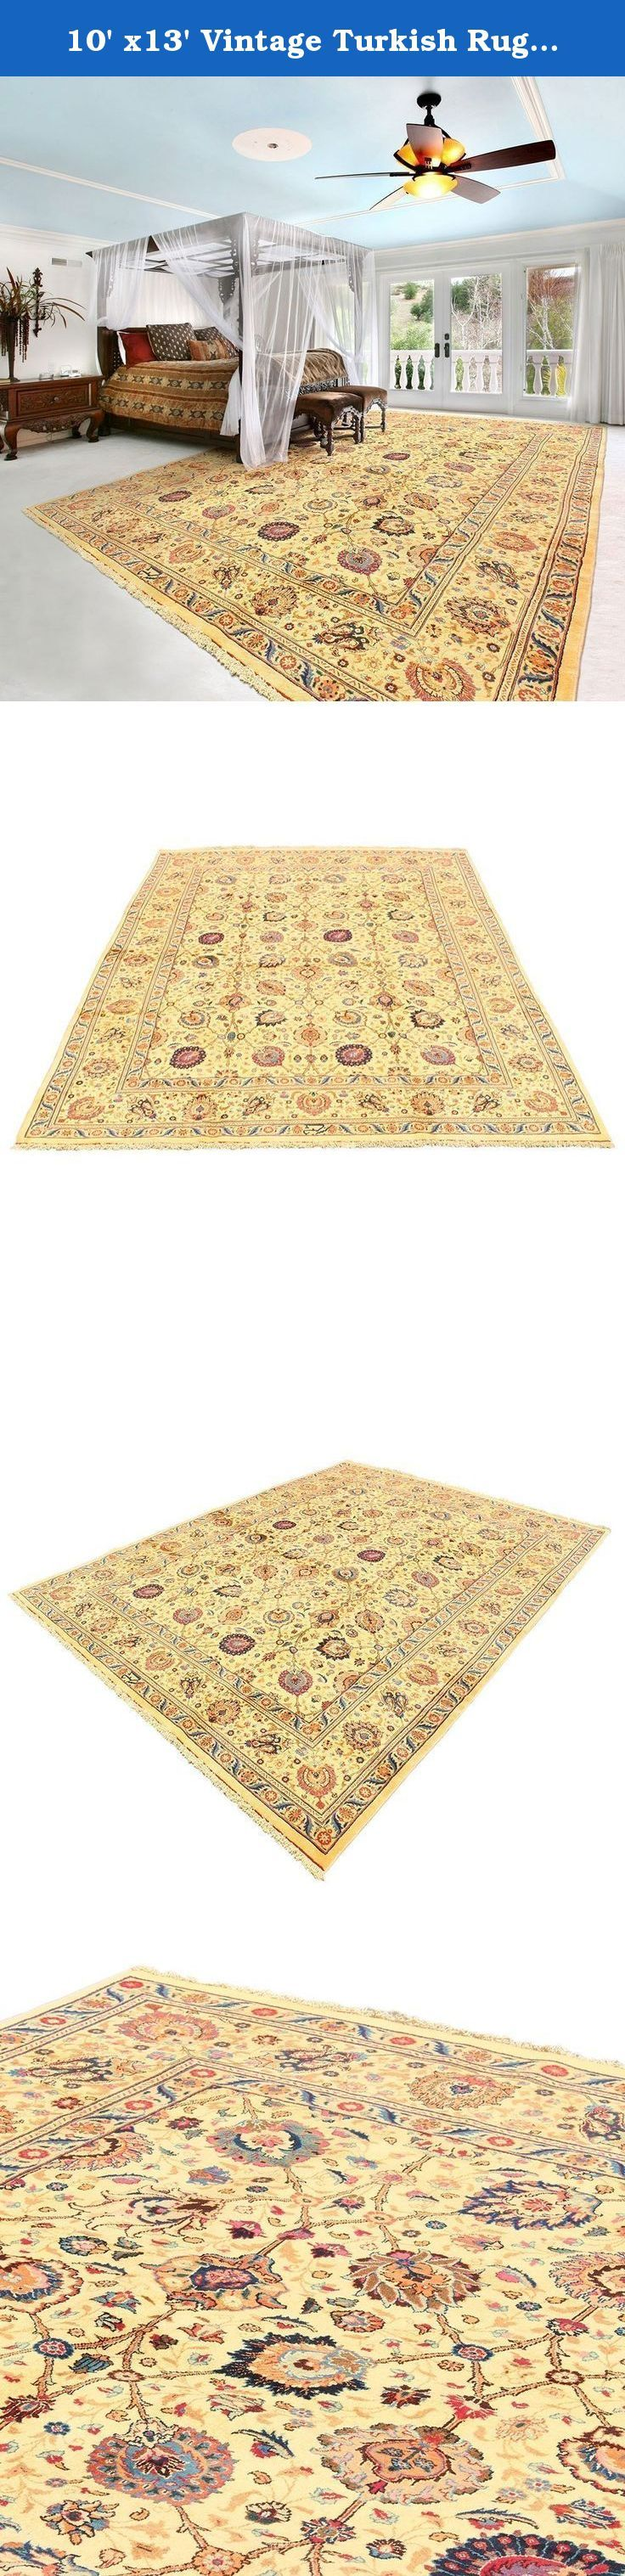 10' x13' Vintage Turkish Rug from 1860s, High Class One Of A Kind Oriental Rug in Excellent Condition , Has never Been Used. code:R0101316, Oriental Area Rug, Traditional Fancy Carpet. Traditional designed hand woven rug which comes from pure lamb wool sheared at the Beginning of spring and a mixture of organic colors. It would make your place more attractive with its wonderful color. Really traditional and Classic design. As an advantages of years of being in this business our price is...